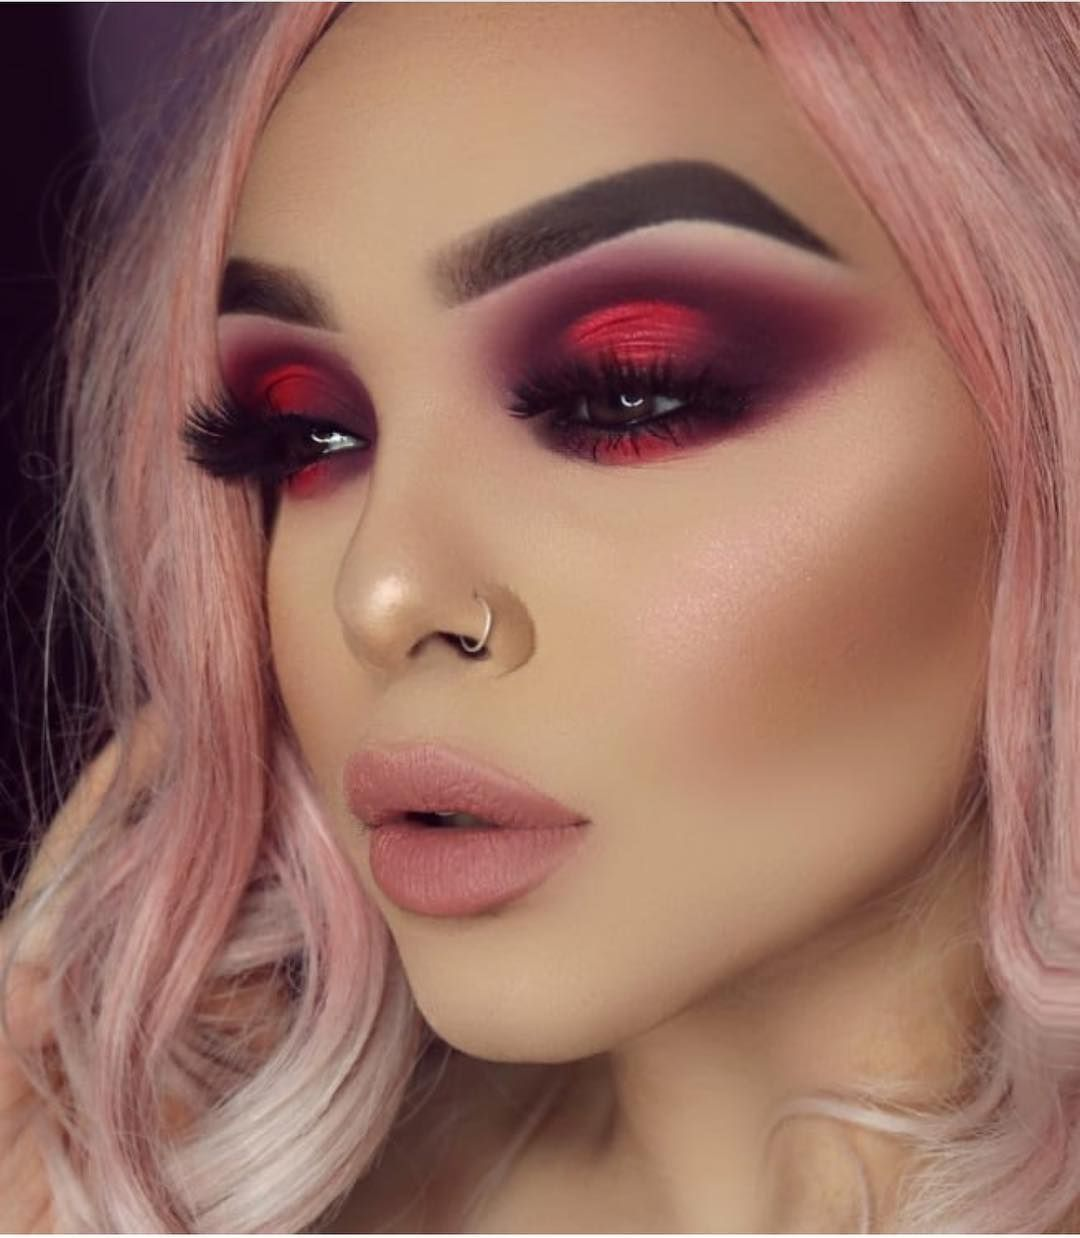 Forum on this topic: 21 Makeup Ideas for Thanksgiving Dinner, 21-makeup-ideas-for-thanksgiving-dinner/